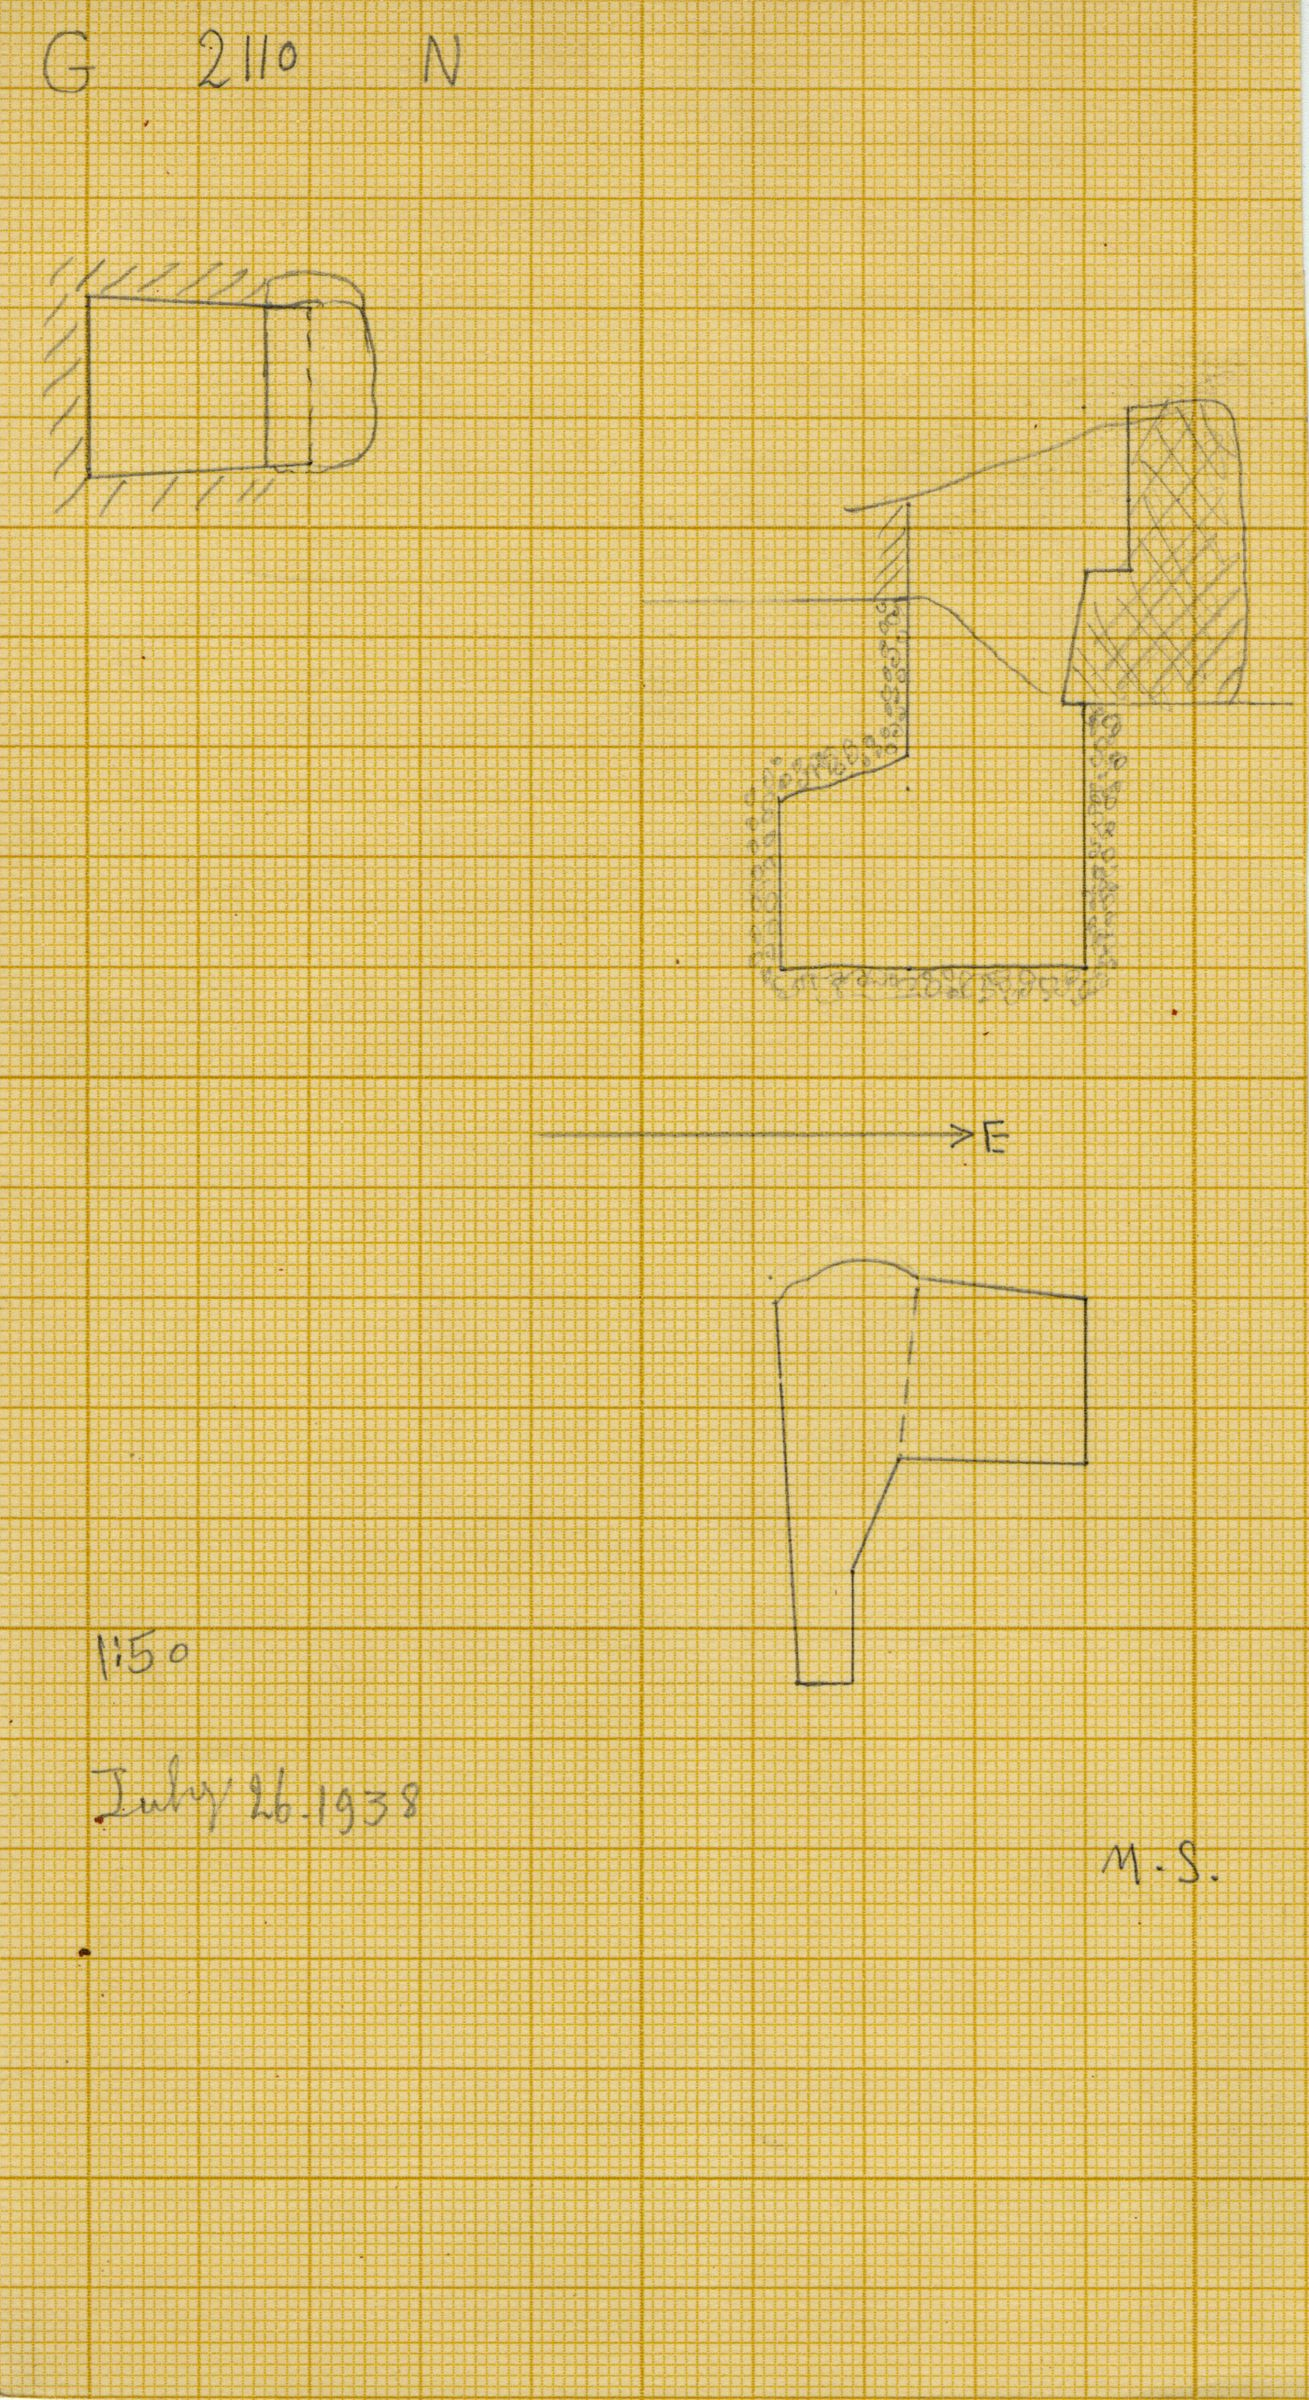 Maps and plans: G 2110, Shaft N